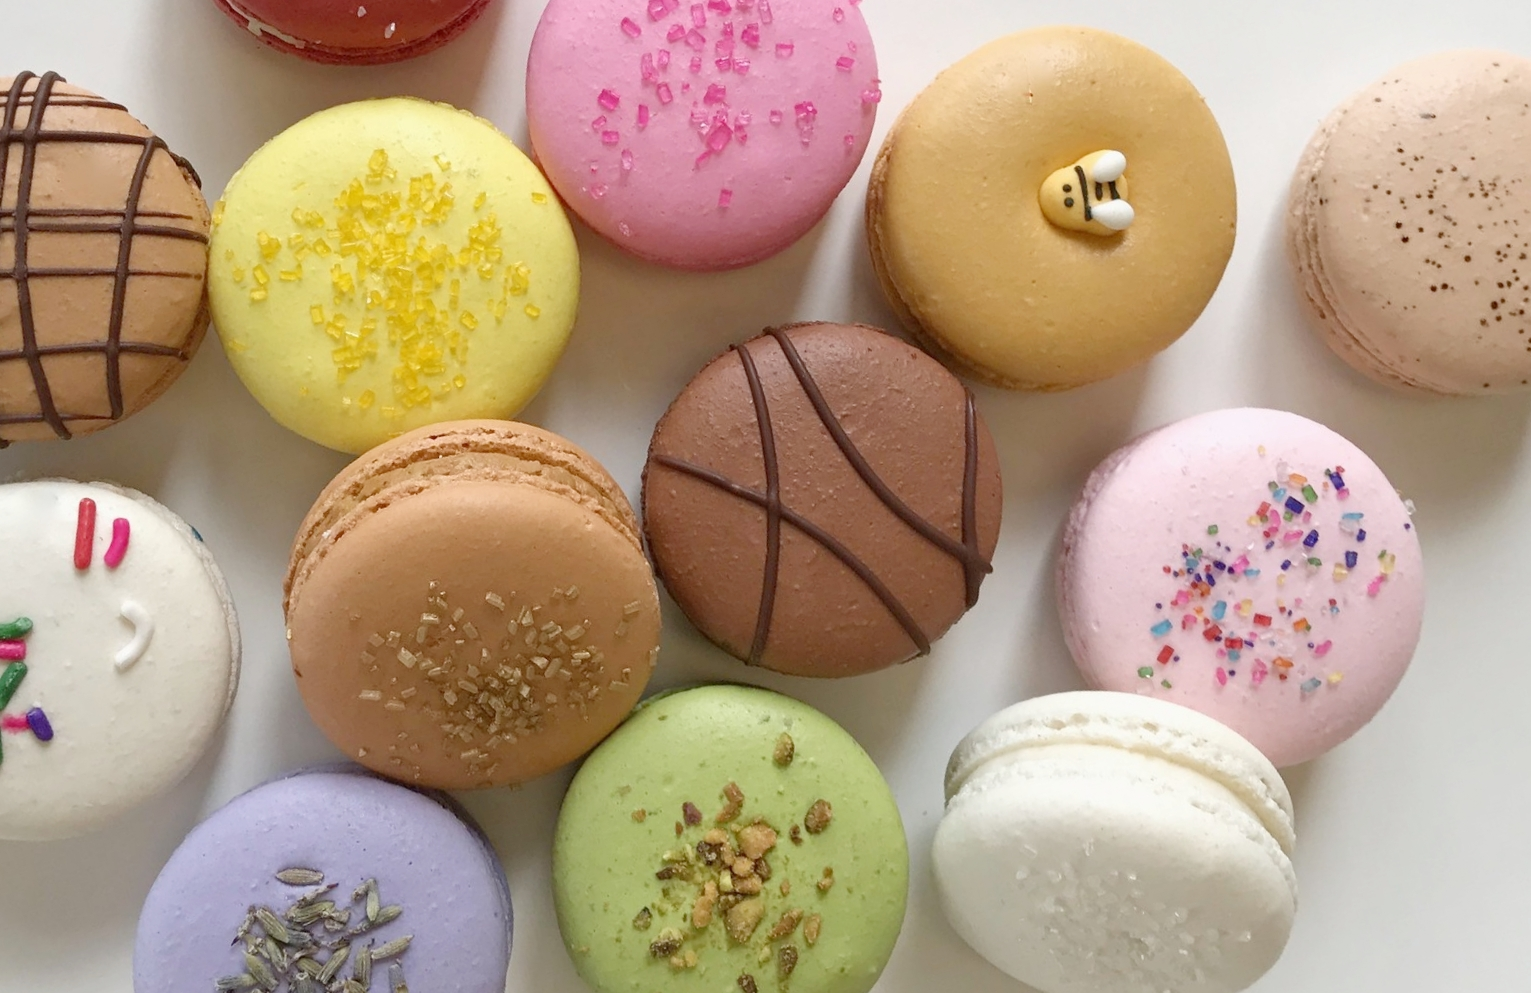 MACARON: ma·ca·ron \ mä-kə-ˈrōnn. a light, often brightly colored sandwich cookie consisting of two rounded disks made from a batter of egg whites, sugar, and almond flour surrounding a sweet filling, usually a ganache, buttercream, or jam. -